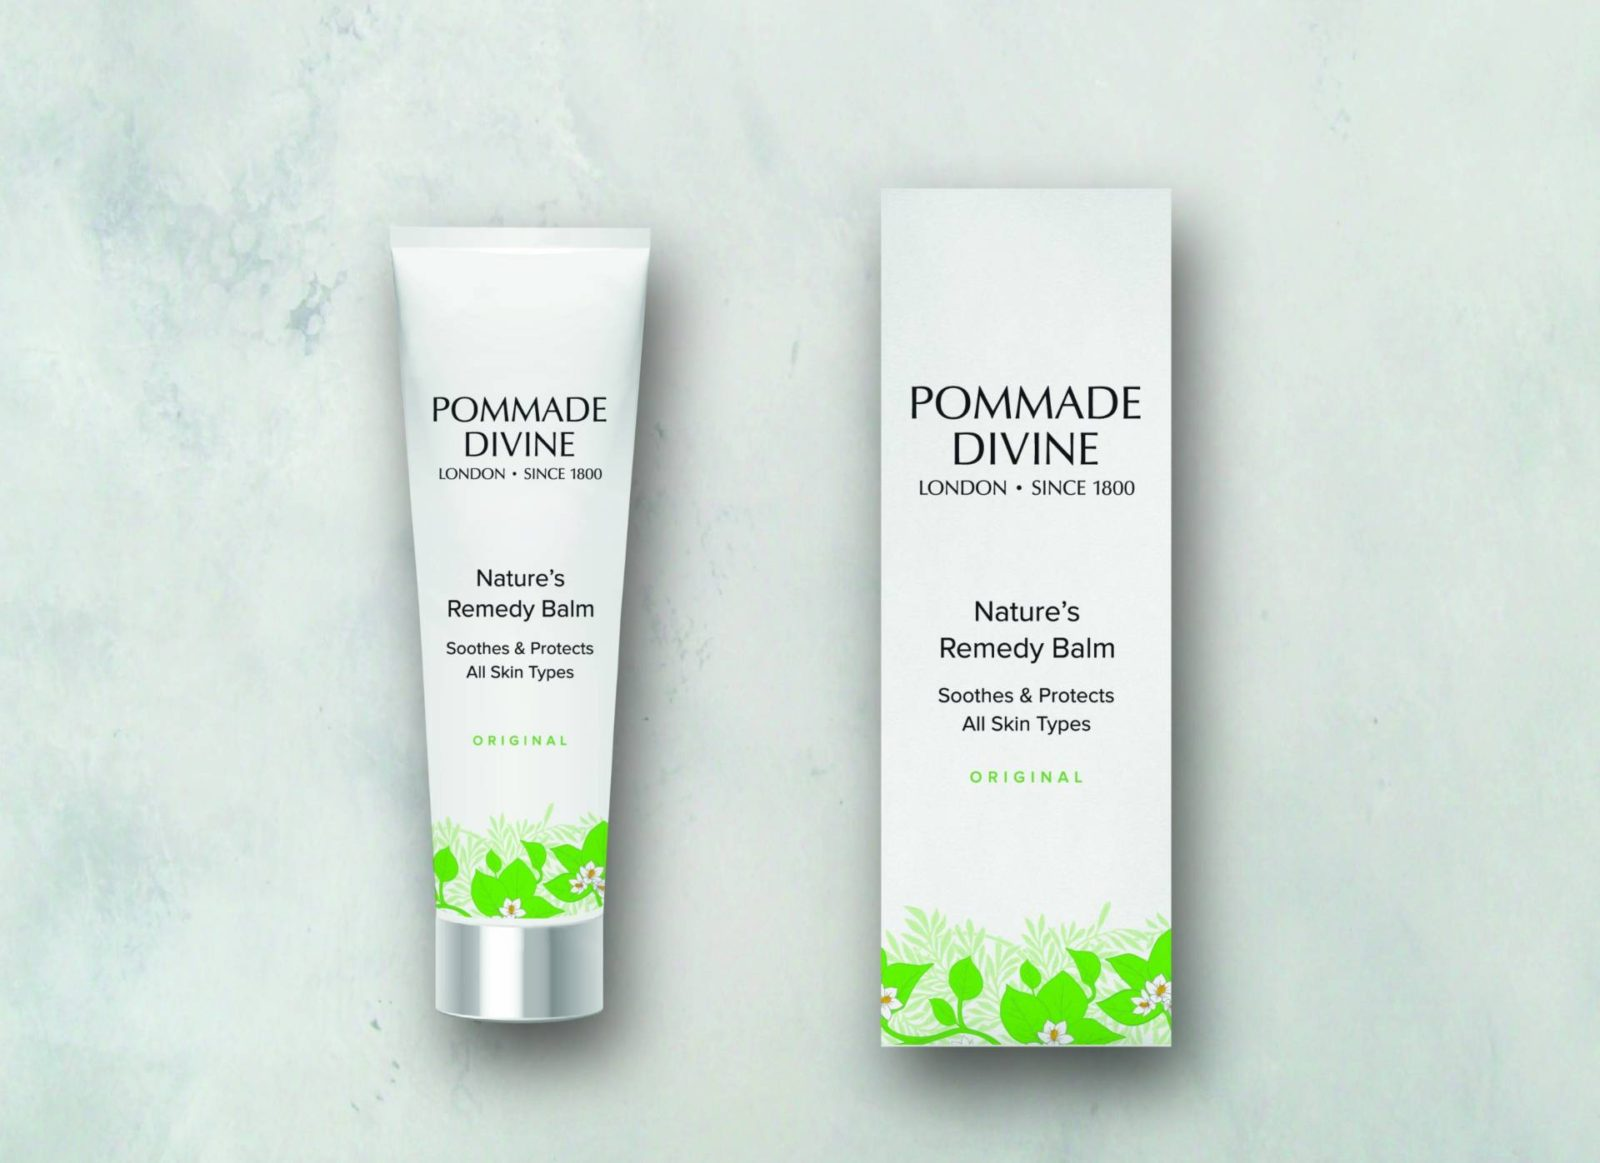 Pommade Divine – Travel Size Tube Crowdfunding Project